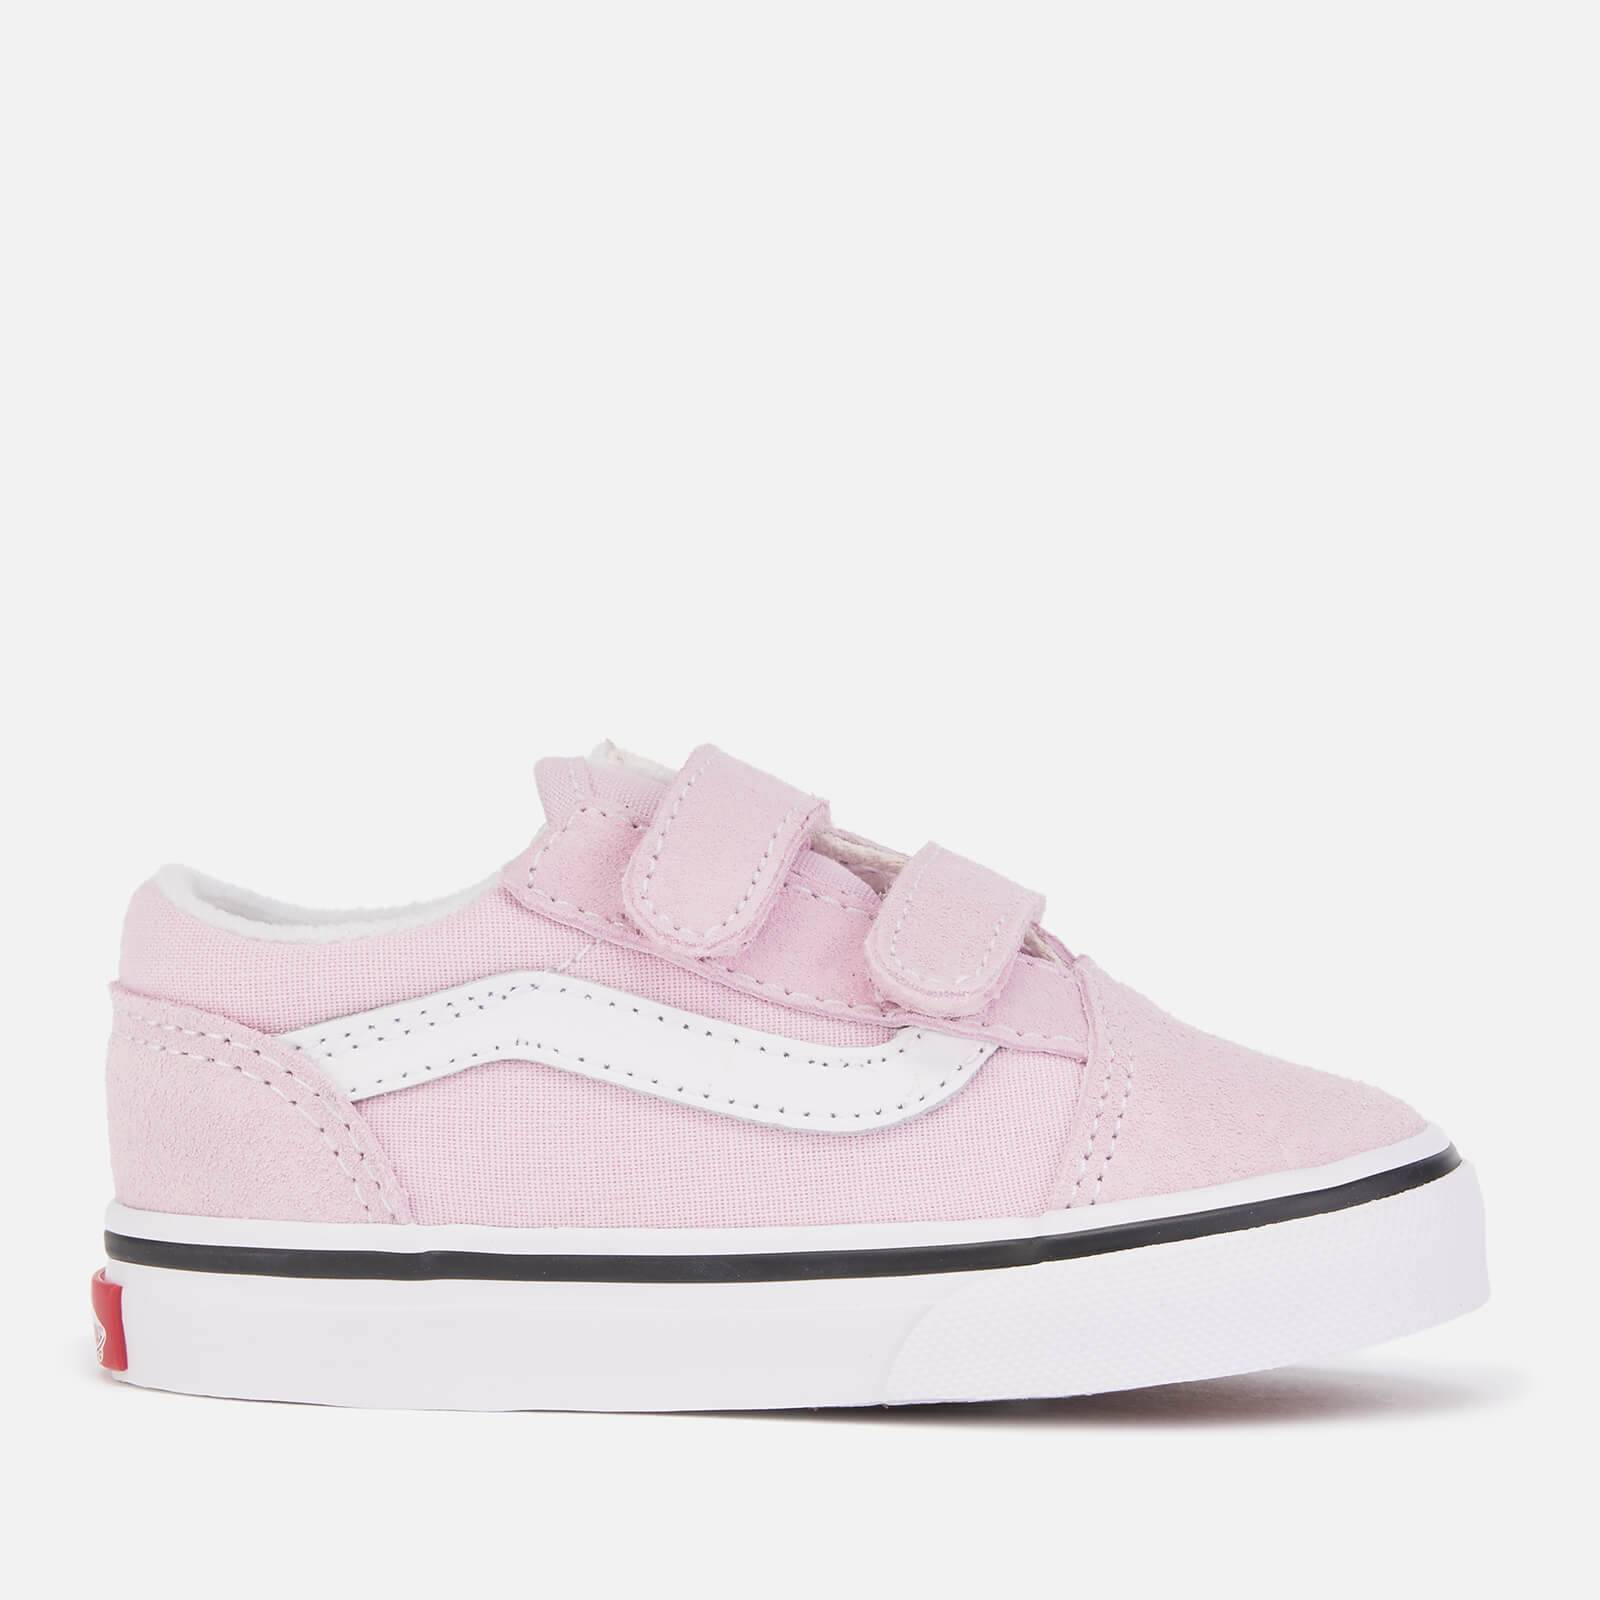 Vans Toddlers' Old Skool Velcro Trainers - Lilac Snow/True White - UK 9 Toddler